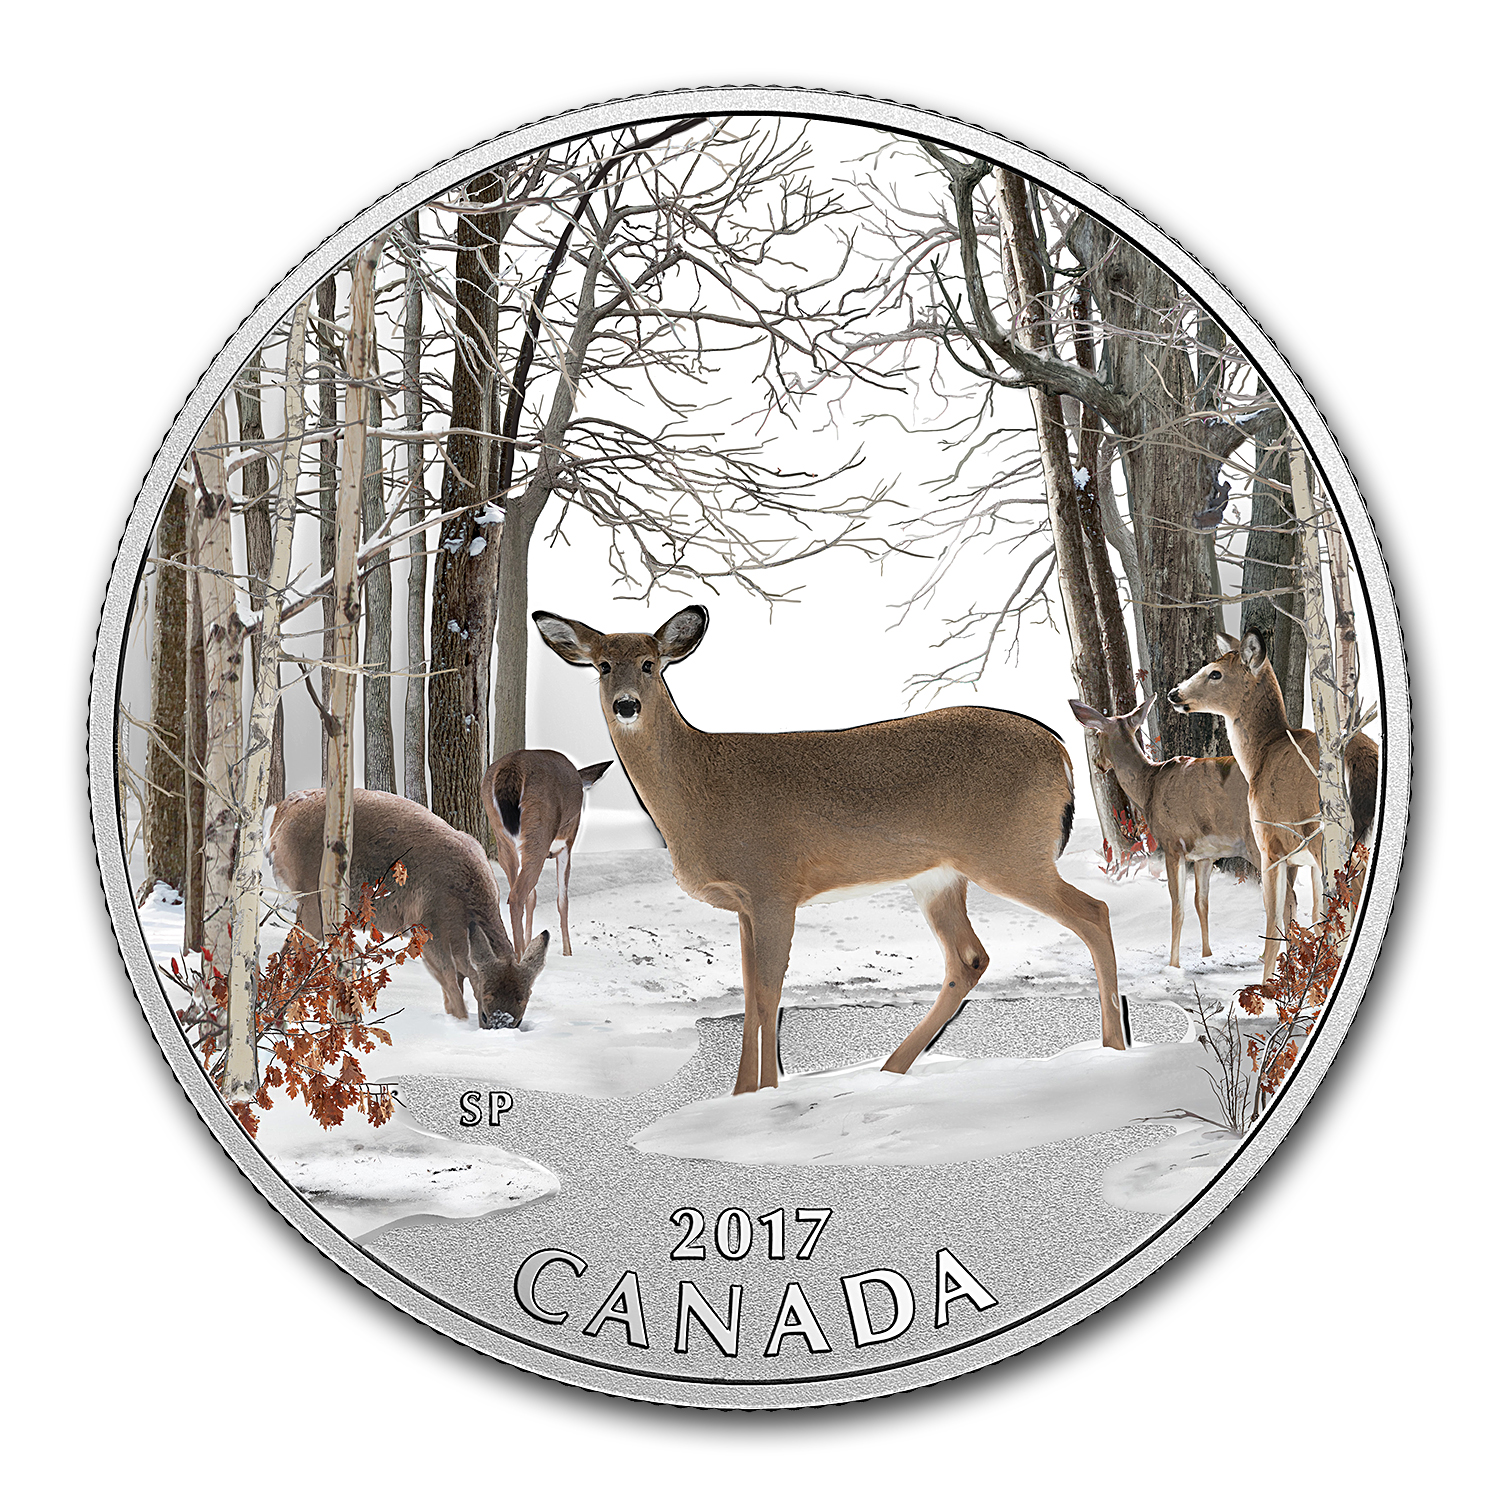 2017 Canada 1/2 oz Silver $10 Spring Sightings: Deer